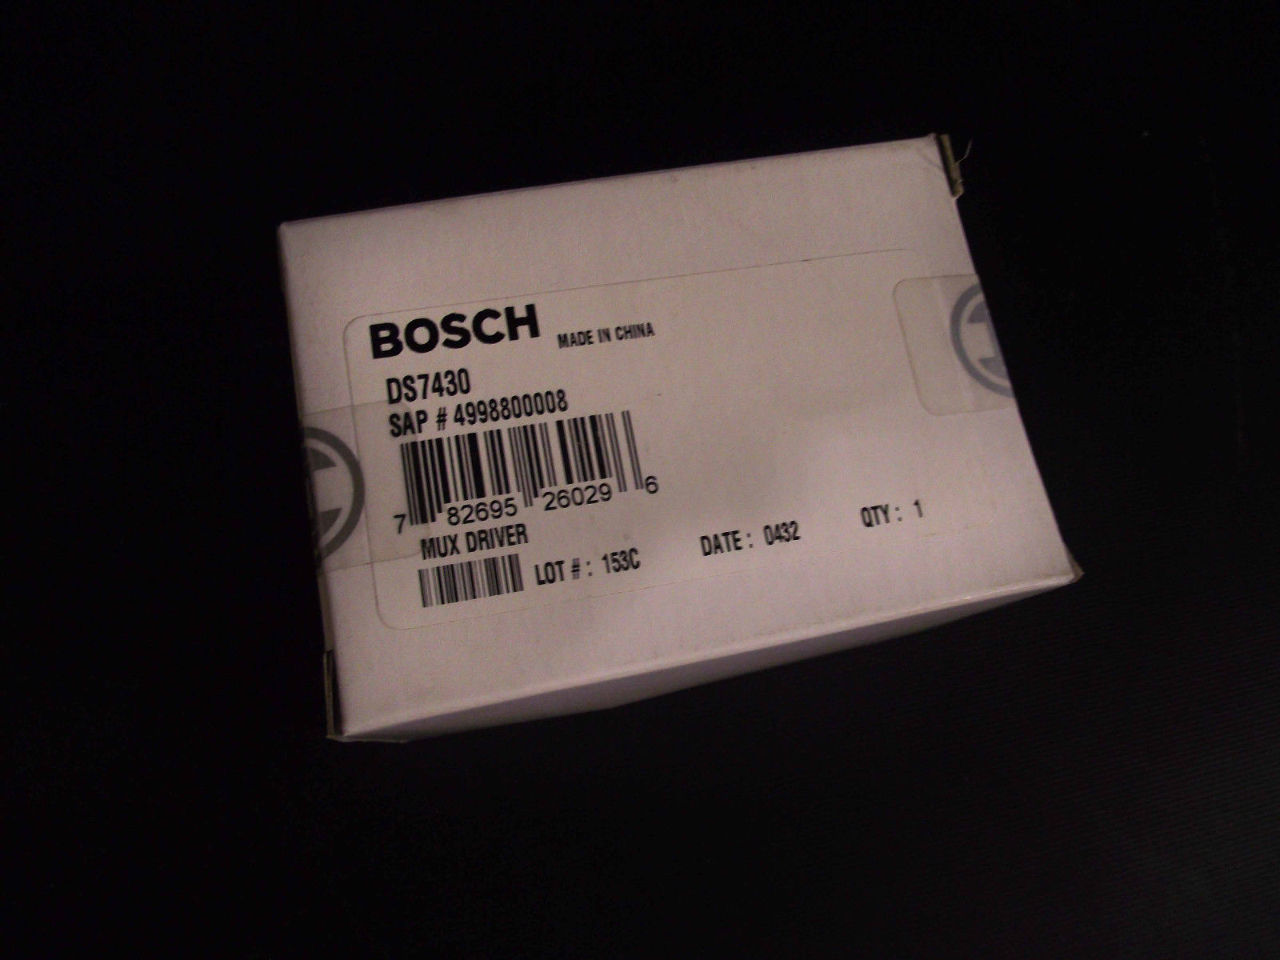 NEW BOSCH Detection Systems DS7430 Multiflex Expansion Module BOS-DS7430